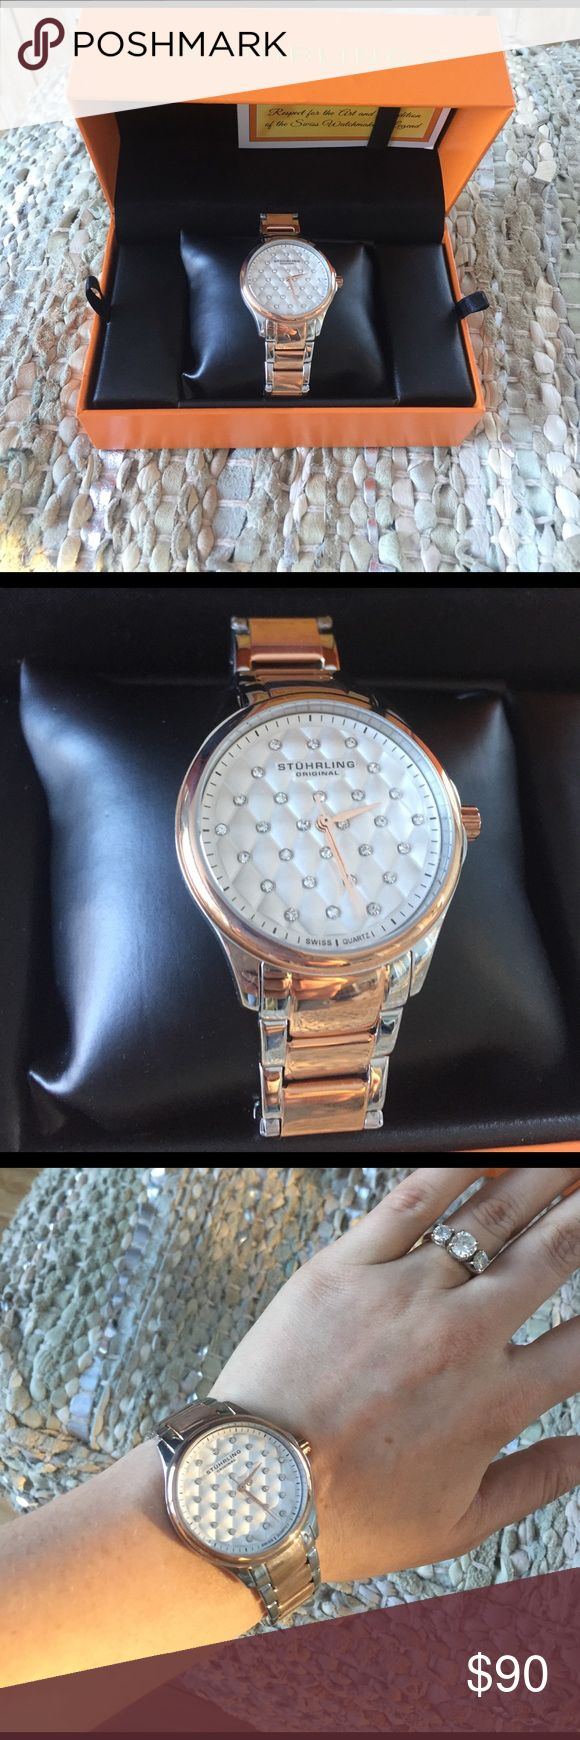 Stuhrling NEW IN BOX authentic watch. Stuhrling NEW IN BOX authentic watch. Never worn or taken out of box except for photo. Has cushioned rhinestones sterling silver. Online says yellow gold but look more rosy to me. Retails for $485. Swiss watch brand got as a Christmas gift! Stuhrling Original Accessories Watches